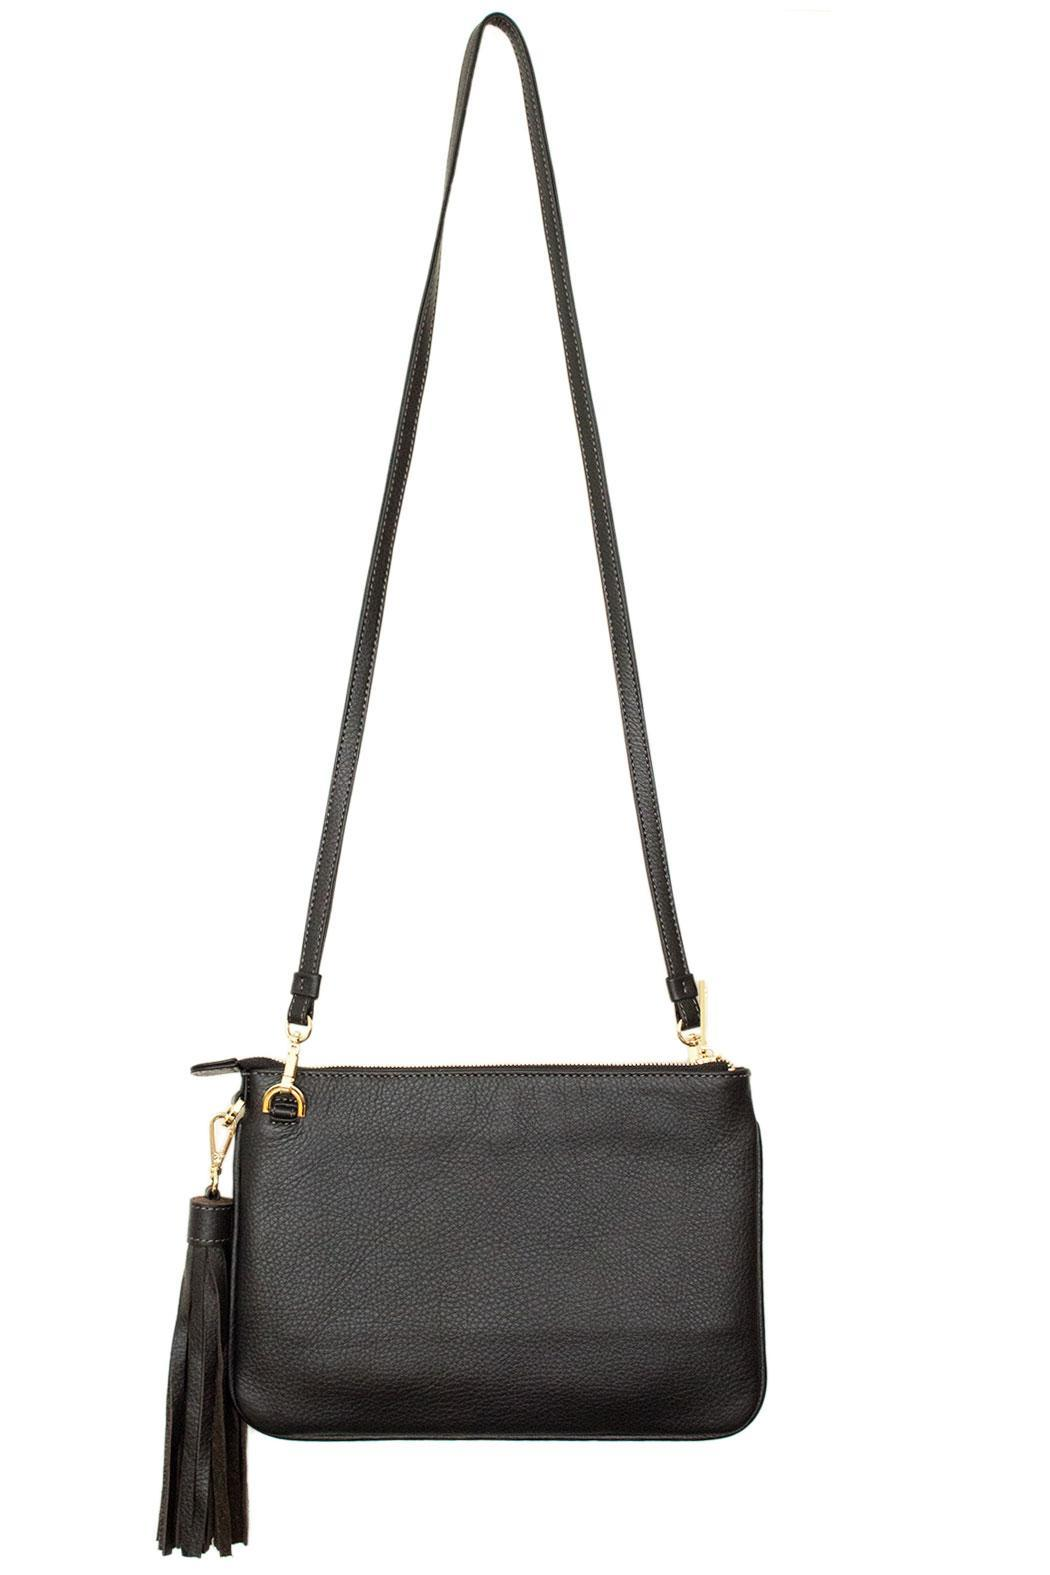 estocolmoapparel Black Leather Cross Body - Back Cropped Image